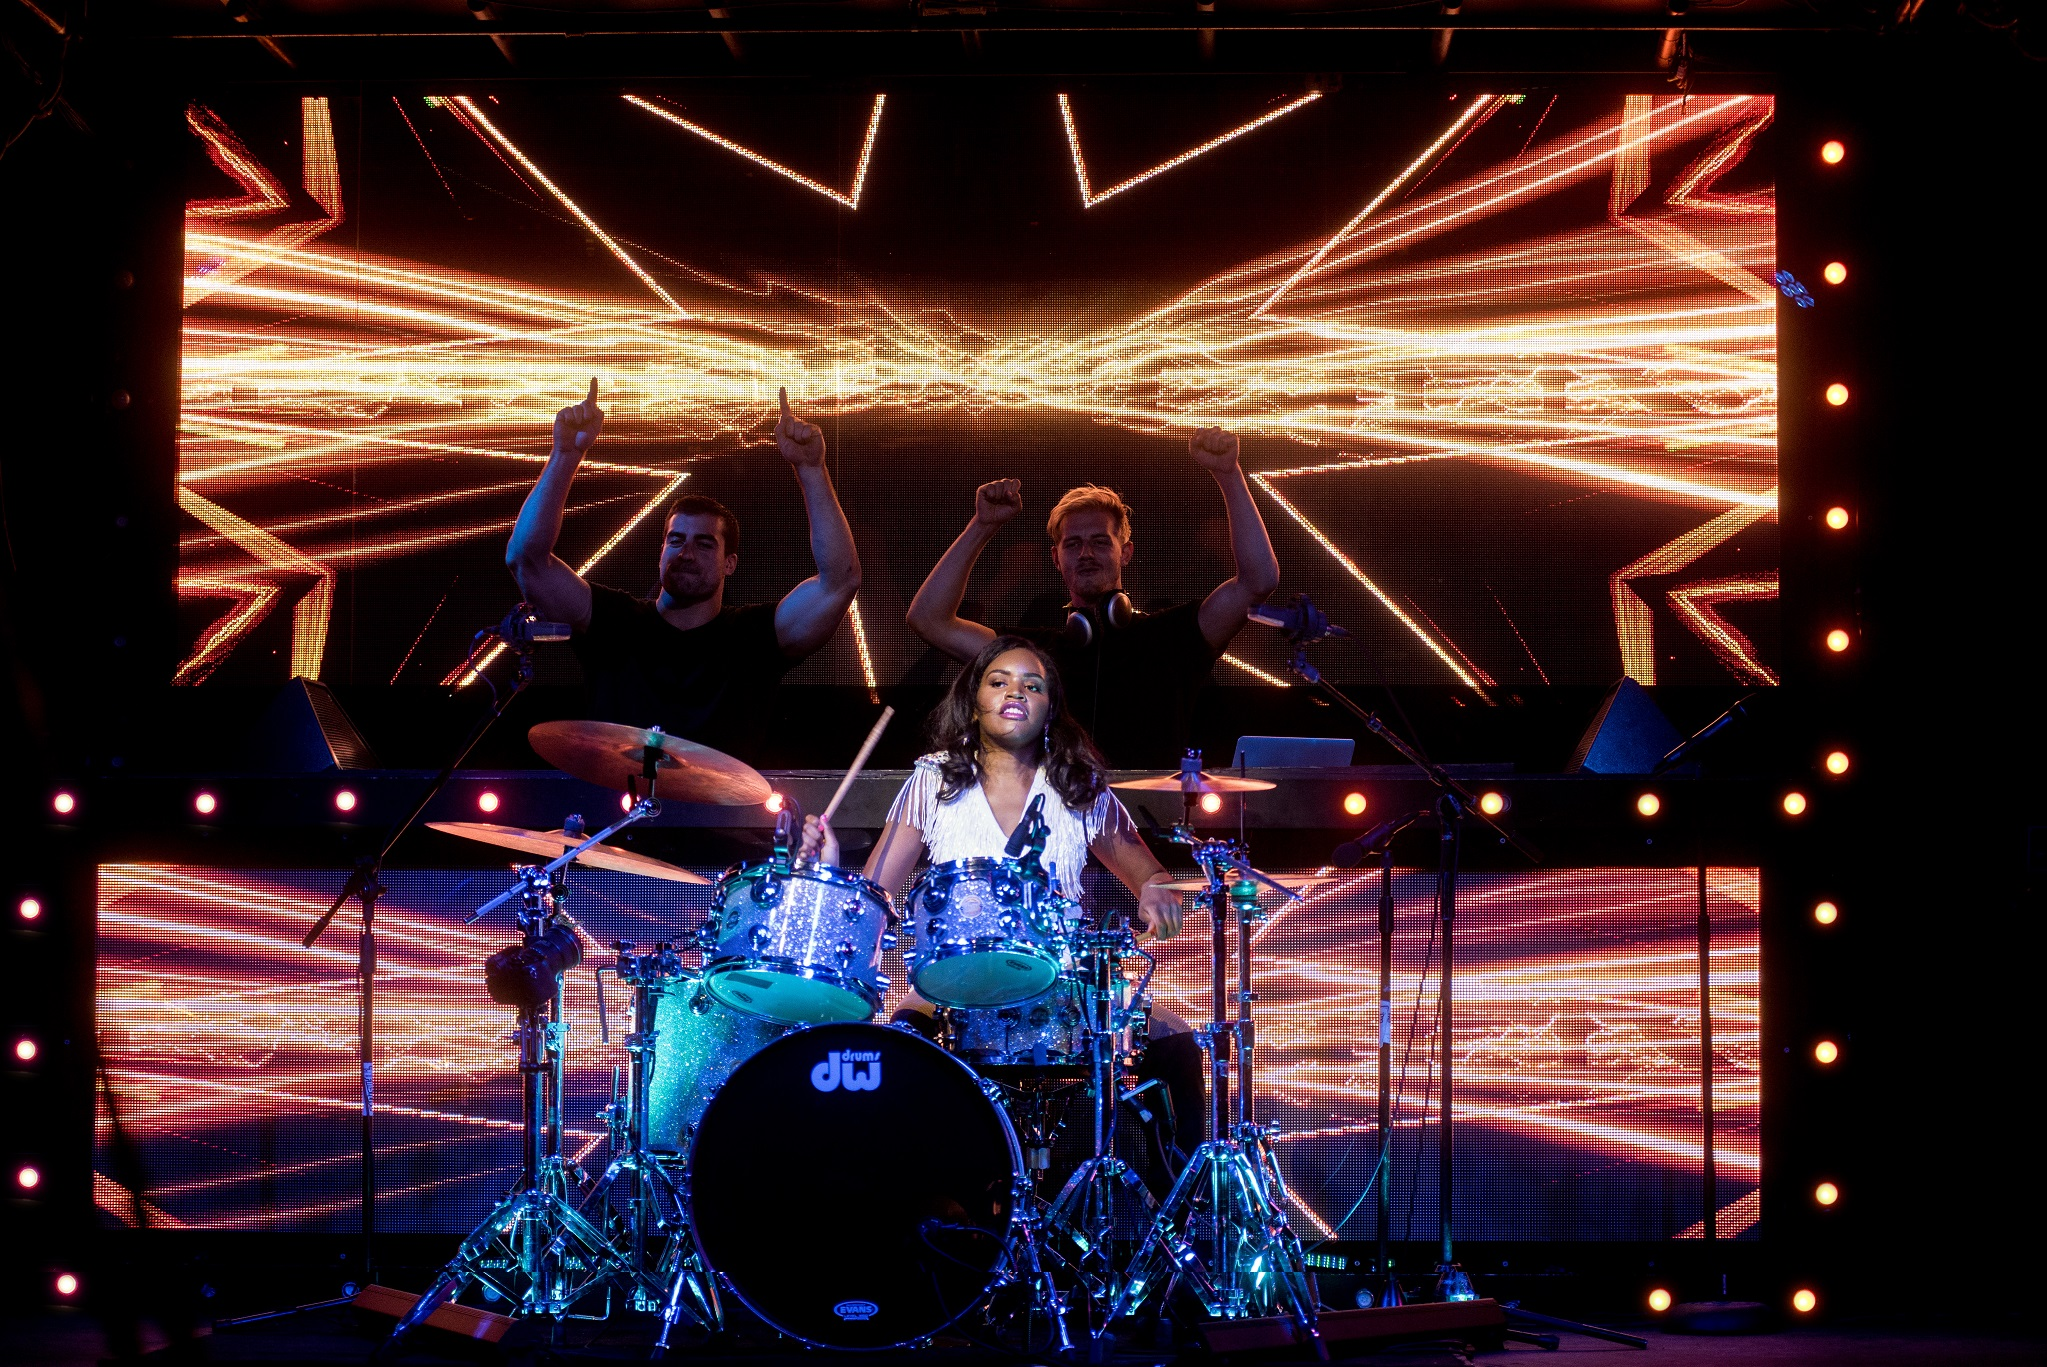 Glorious-Singer-Livetronica Drummer-Producer-Songwriter-Marquee-Nightclub-Video-New York-NY-49lr.jpg